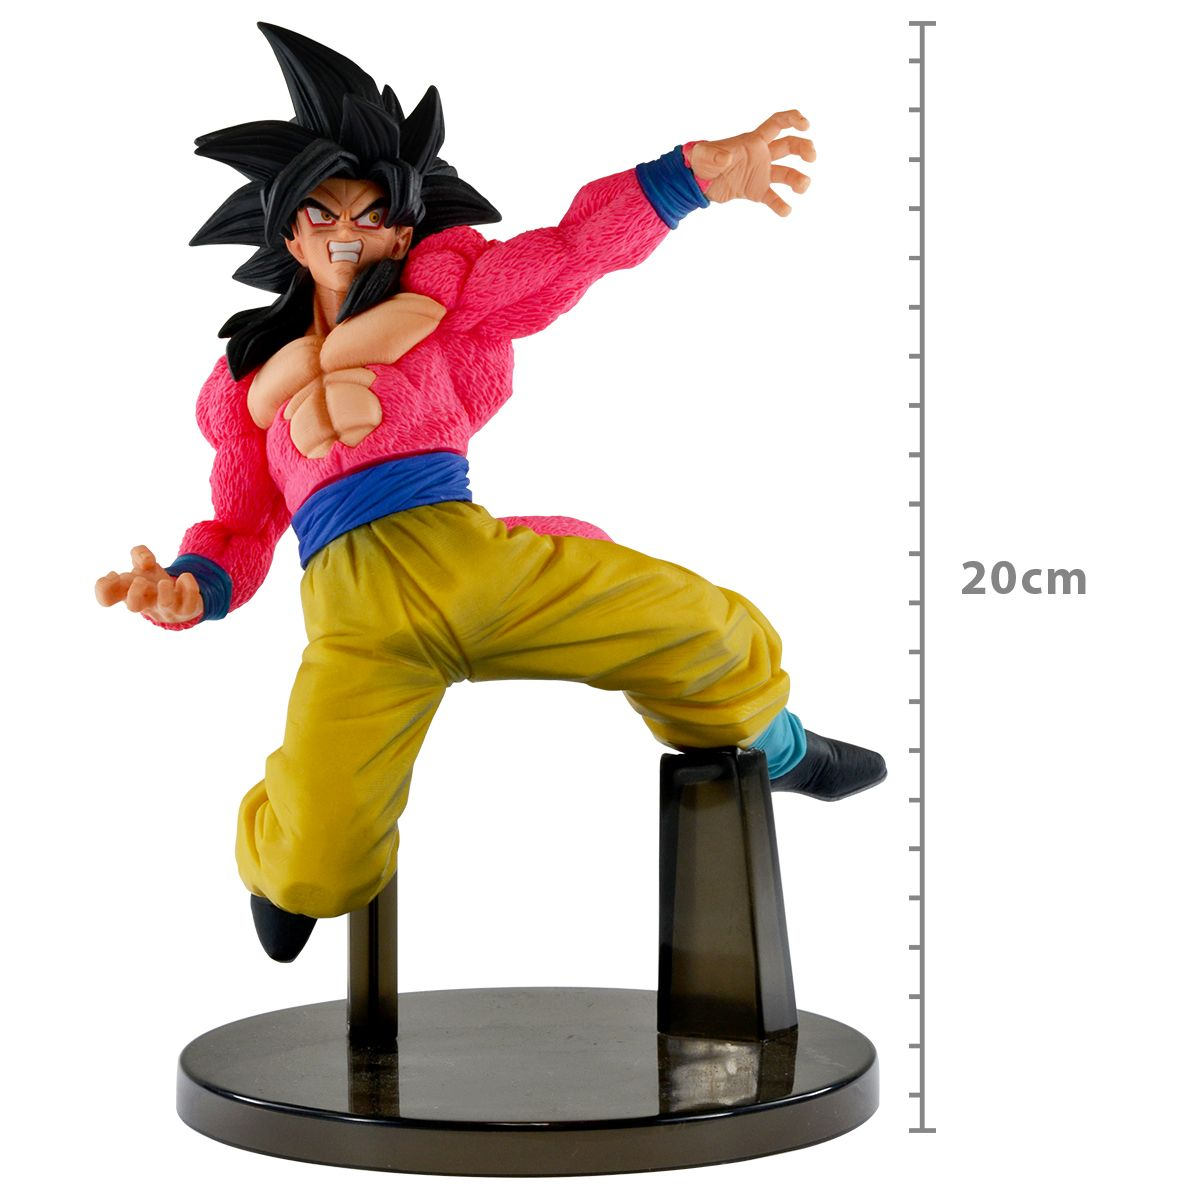 Super Saiyan Son Goku 4 Dragon Ball Super - Bandai Banpresto